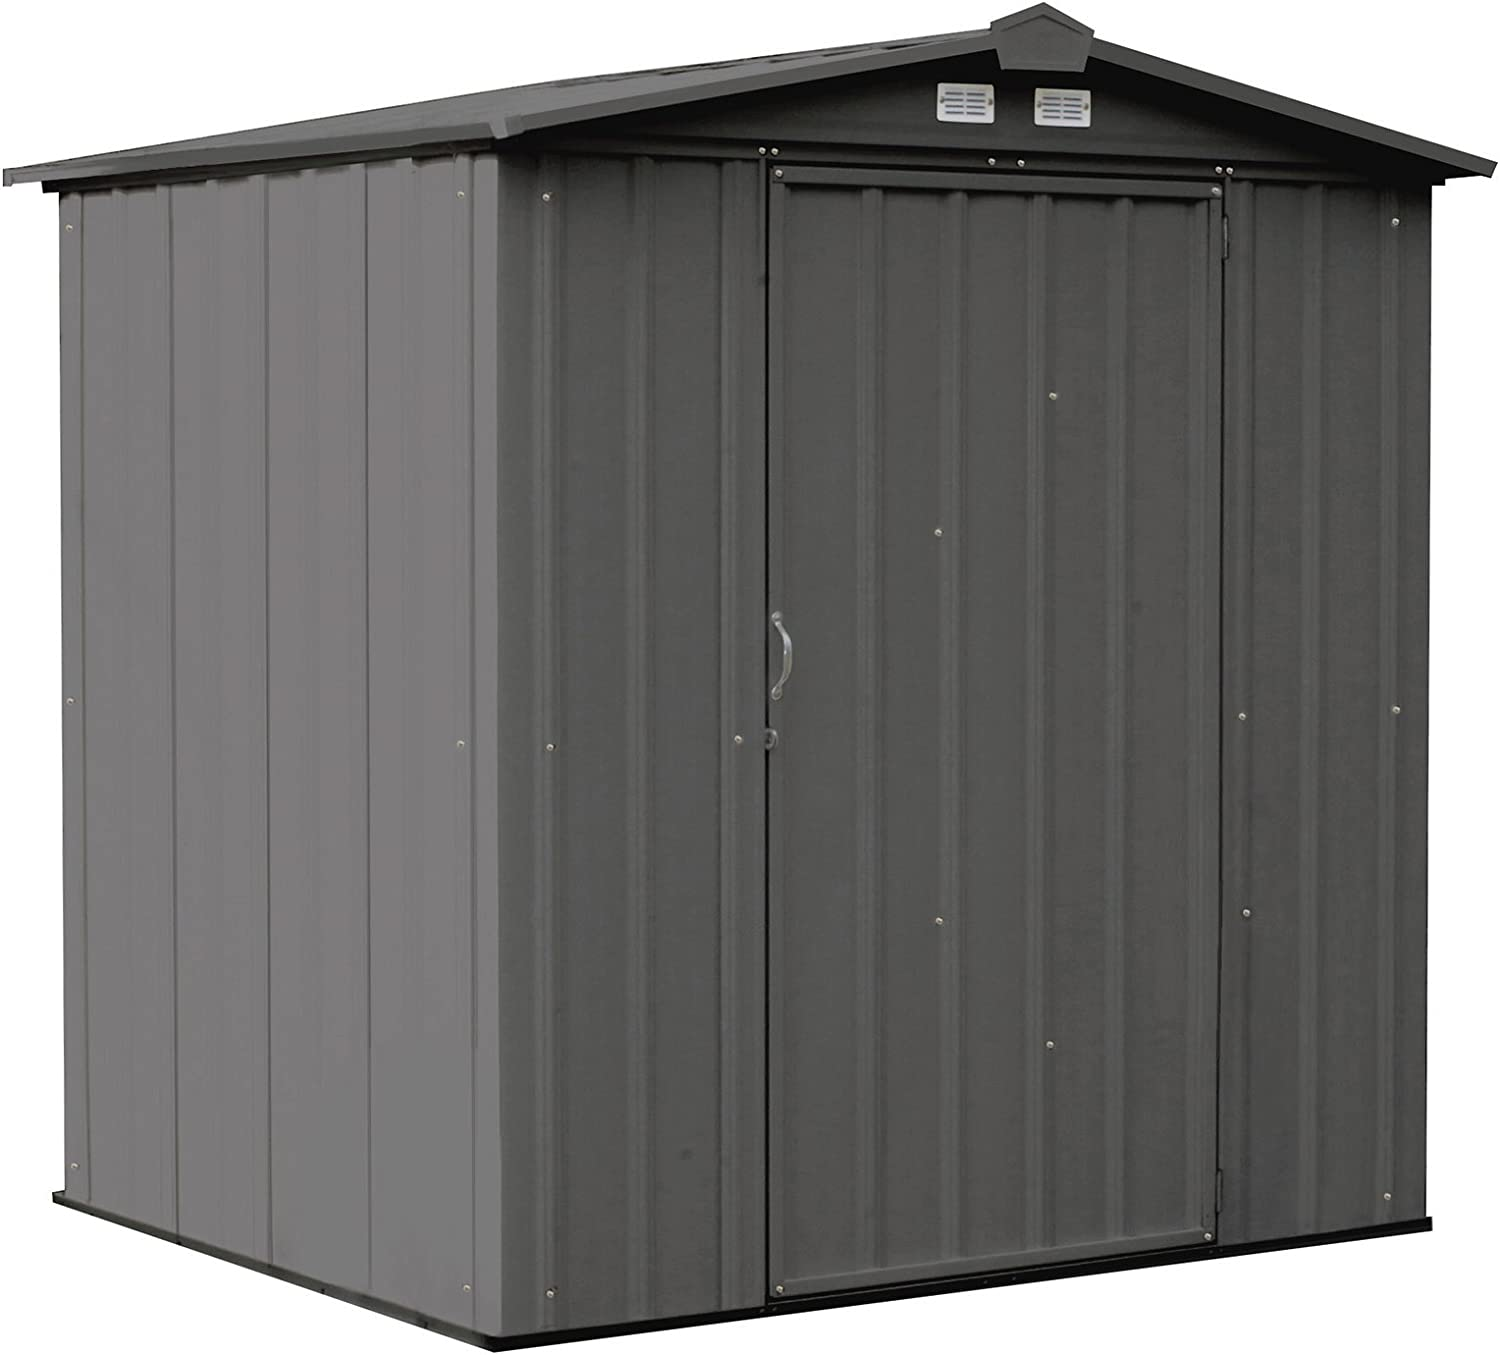 Amazon Com Arrow 6 X 5 Ezee Galvanized Steel Low Gable Shed Charcoal Storage Shed With Peak Style Roof Garden Outdoor